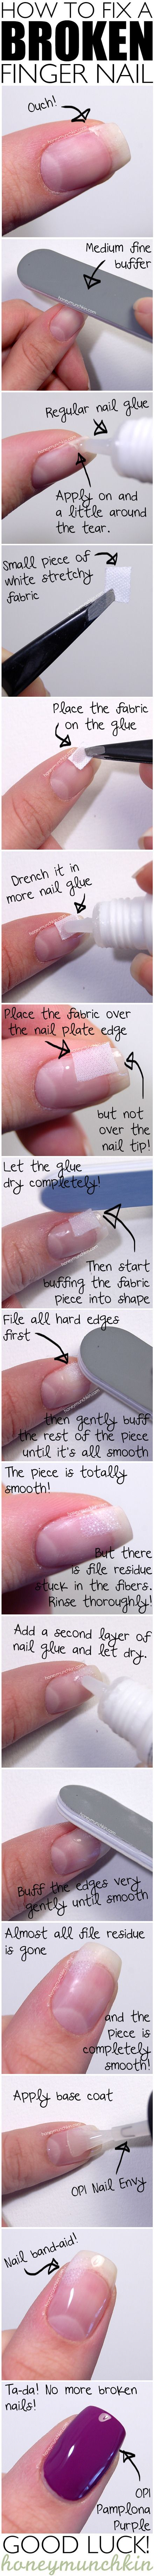 Tutorial: How to fix a broken finger nail THE MOST POPULAR NAILS AND POLISH #nails #polish #Manicure #stylish